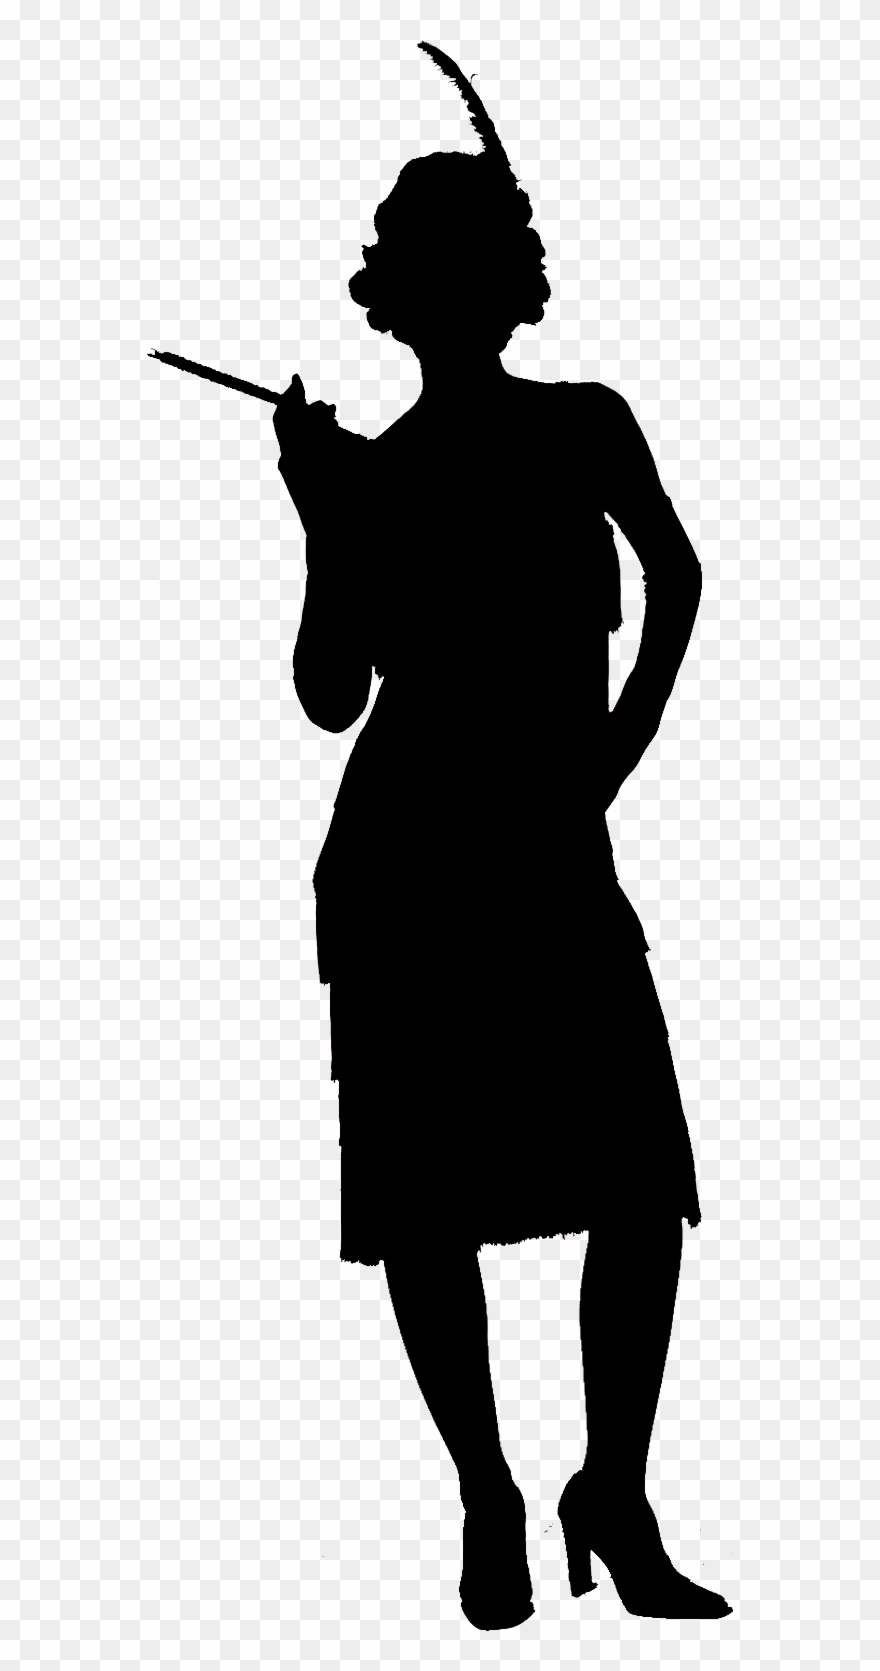 Flapper silhouette clipart library Flapper - Victorian Man Silhouette Png Clipart (#515108) - PinClipart library